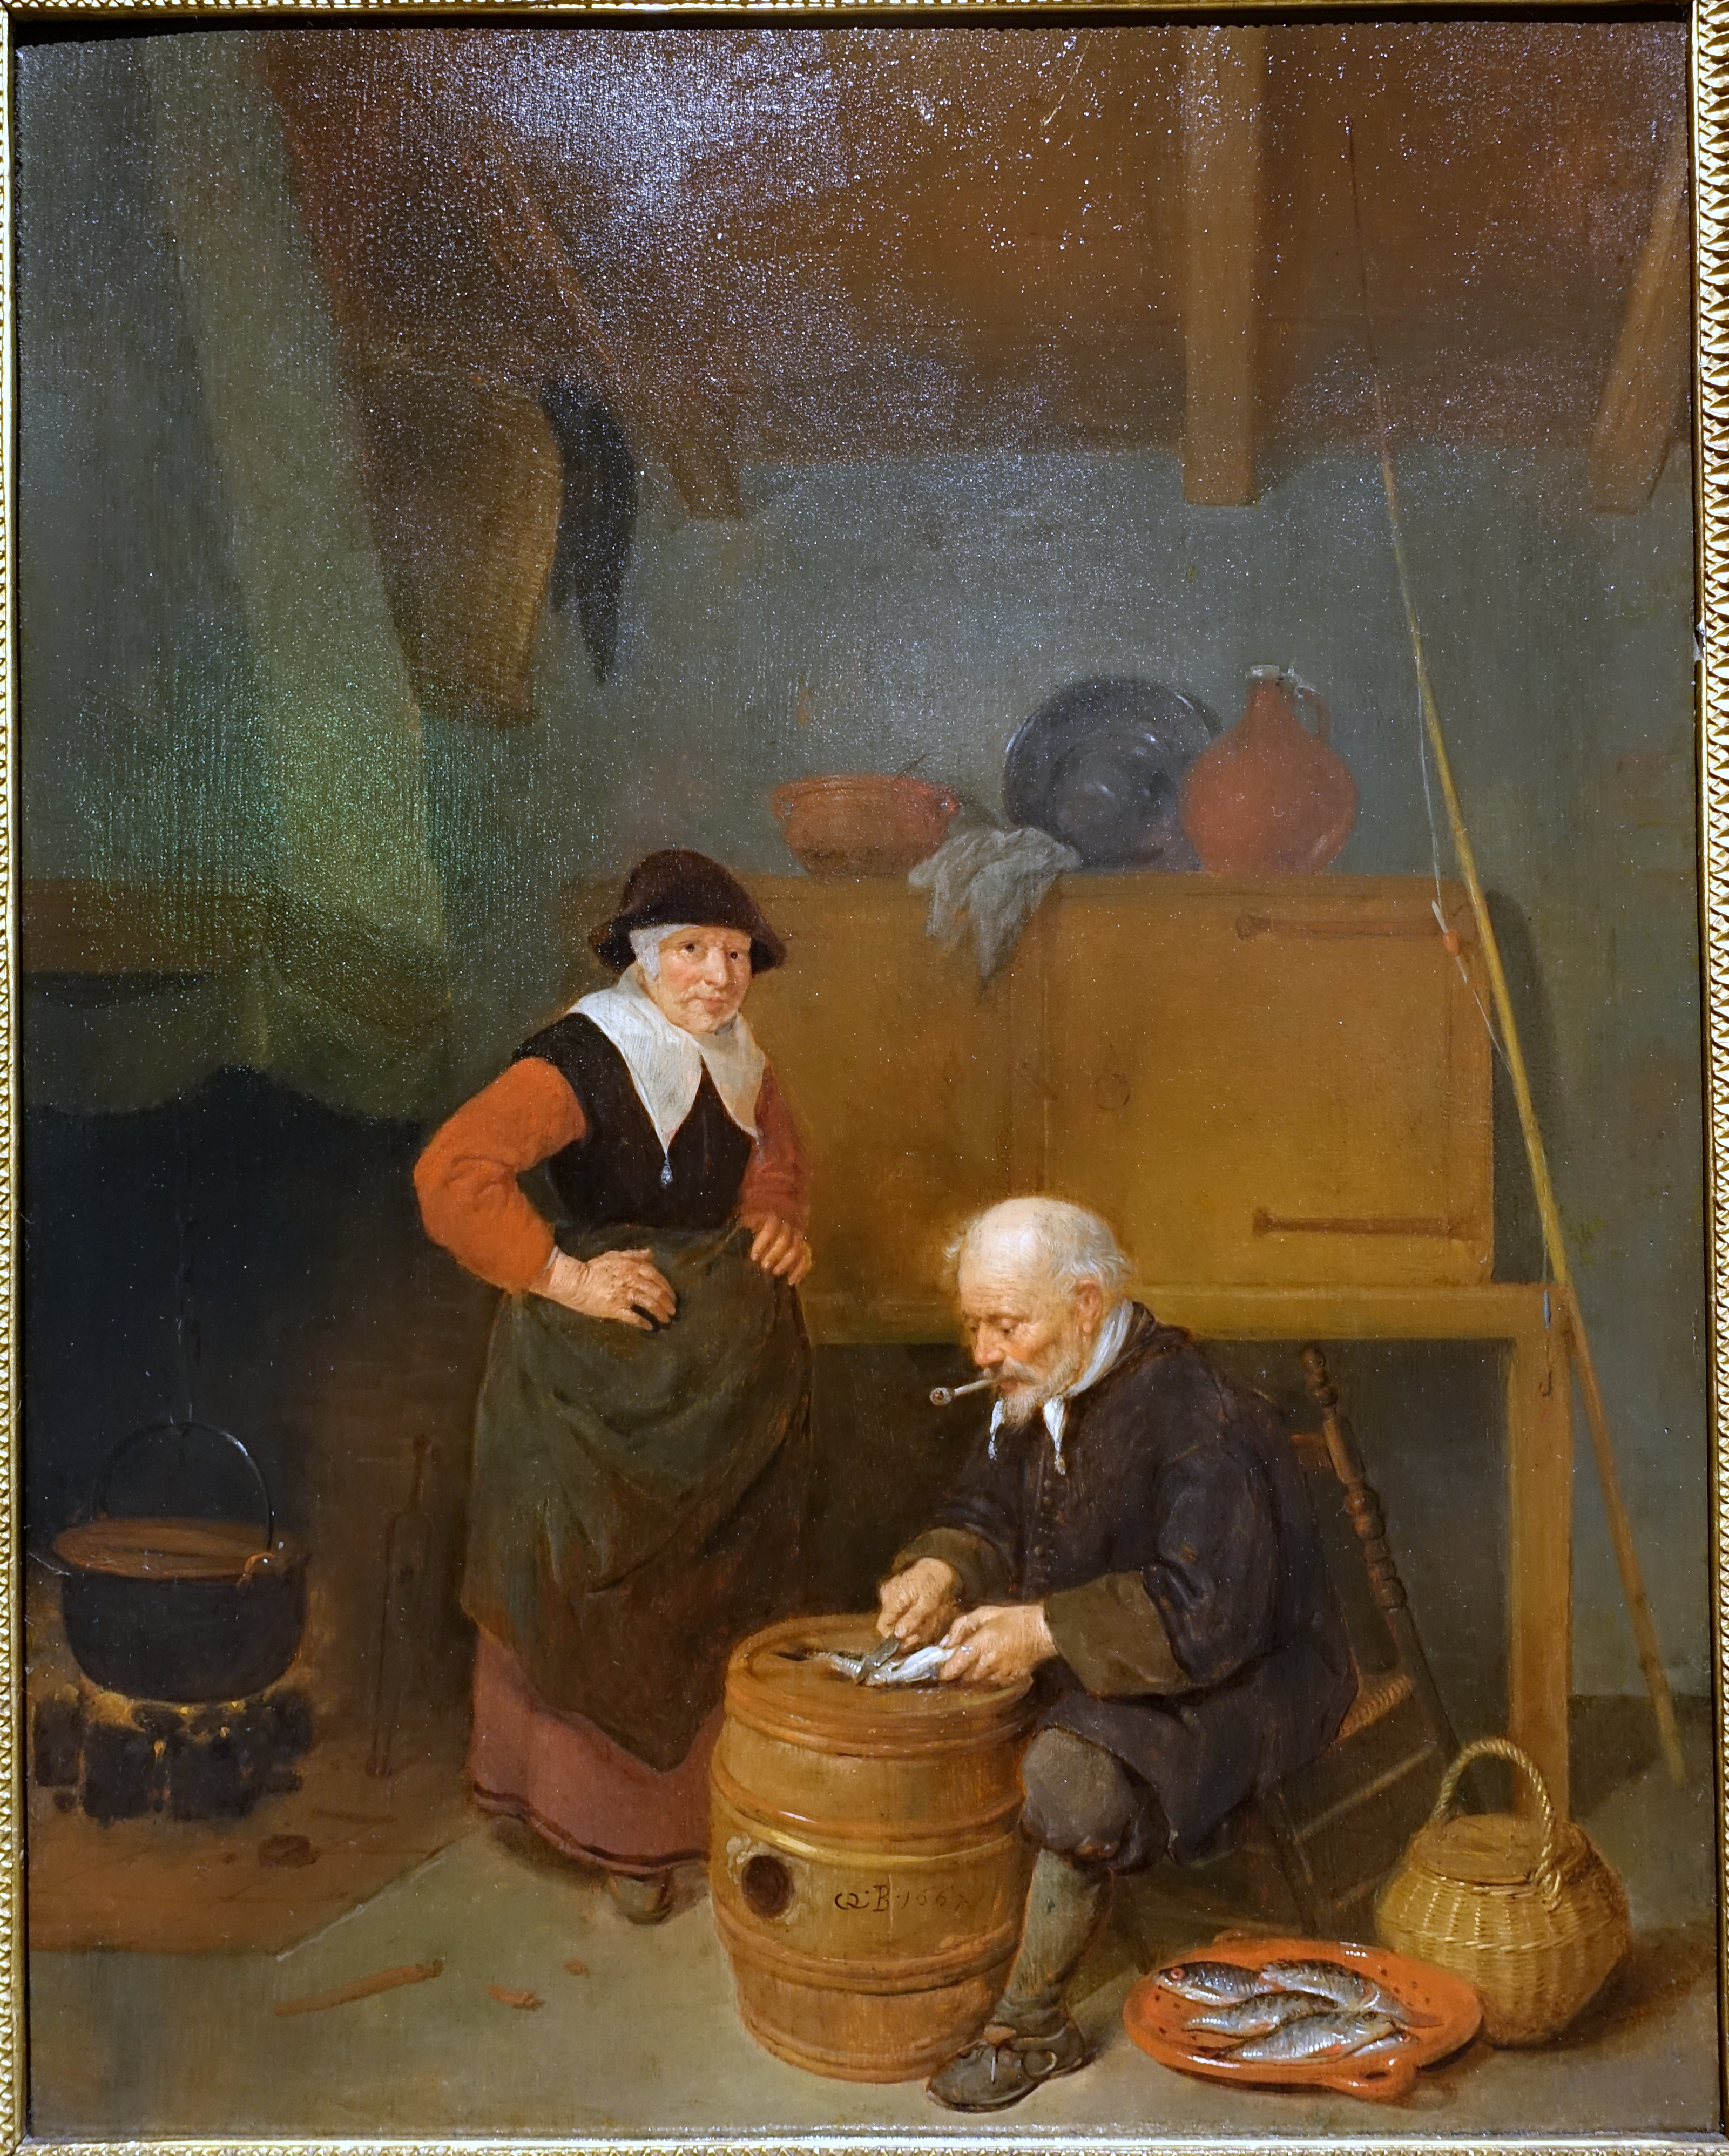 File:An old man gutting a fish, Quiringh Gerritsz van Brekelenkam, 1667,